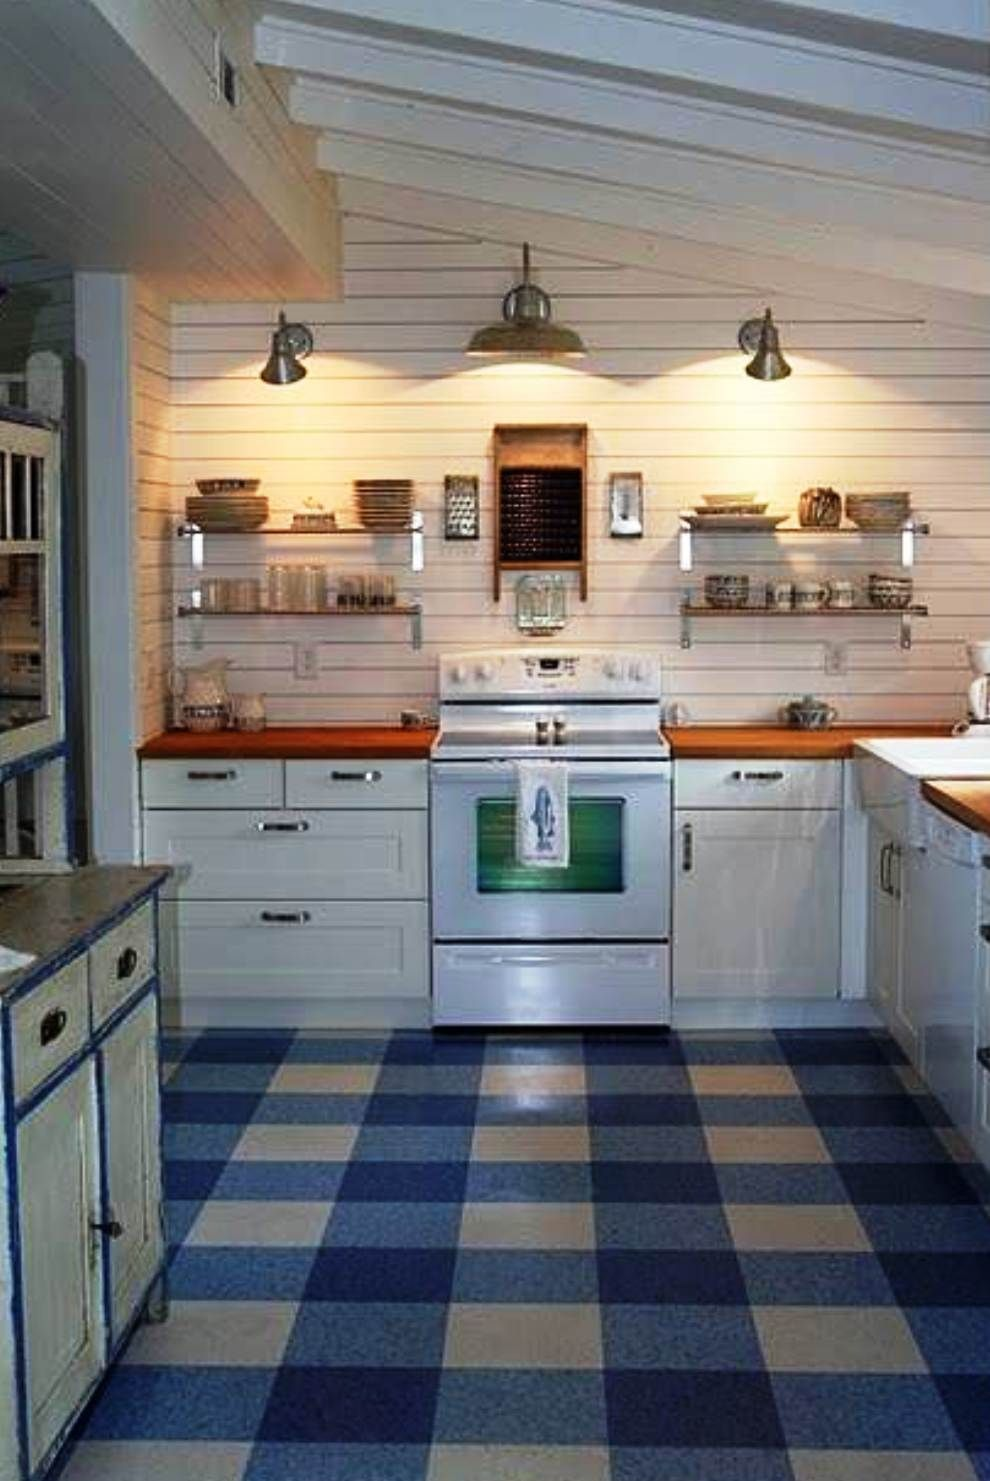 Kitchen Linoleum Clothes Lino For Clever Use Of Three Colors Makes A Beautiful Buffalo Check V